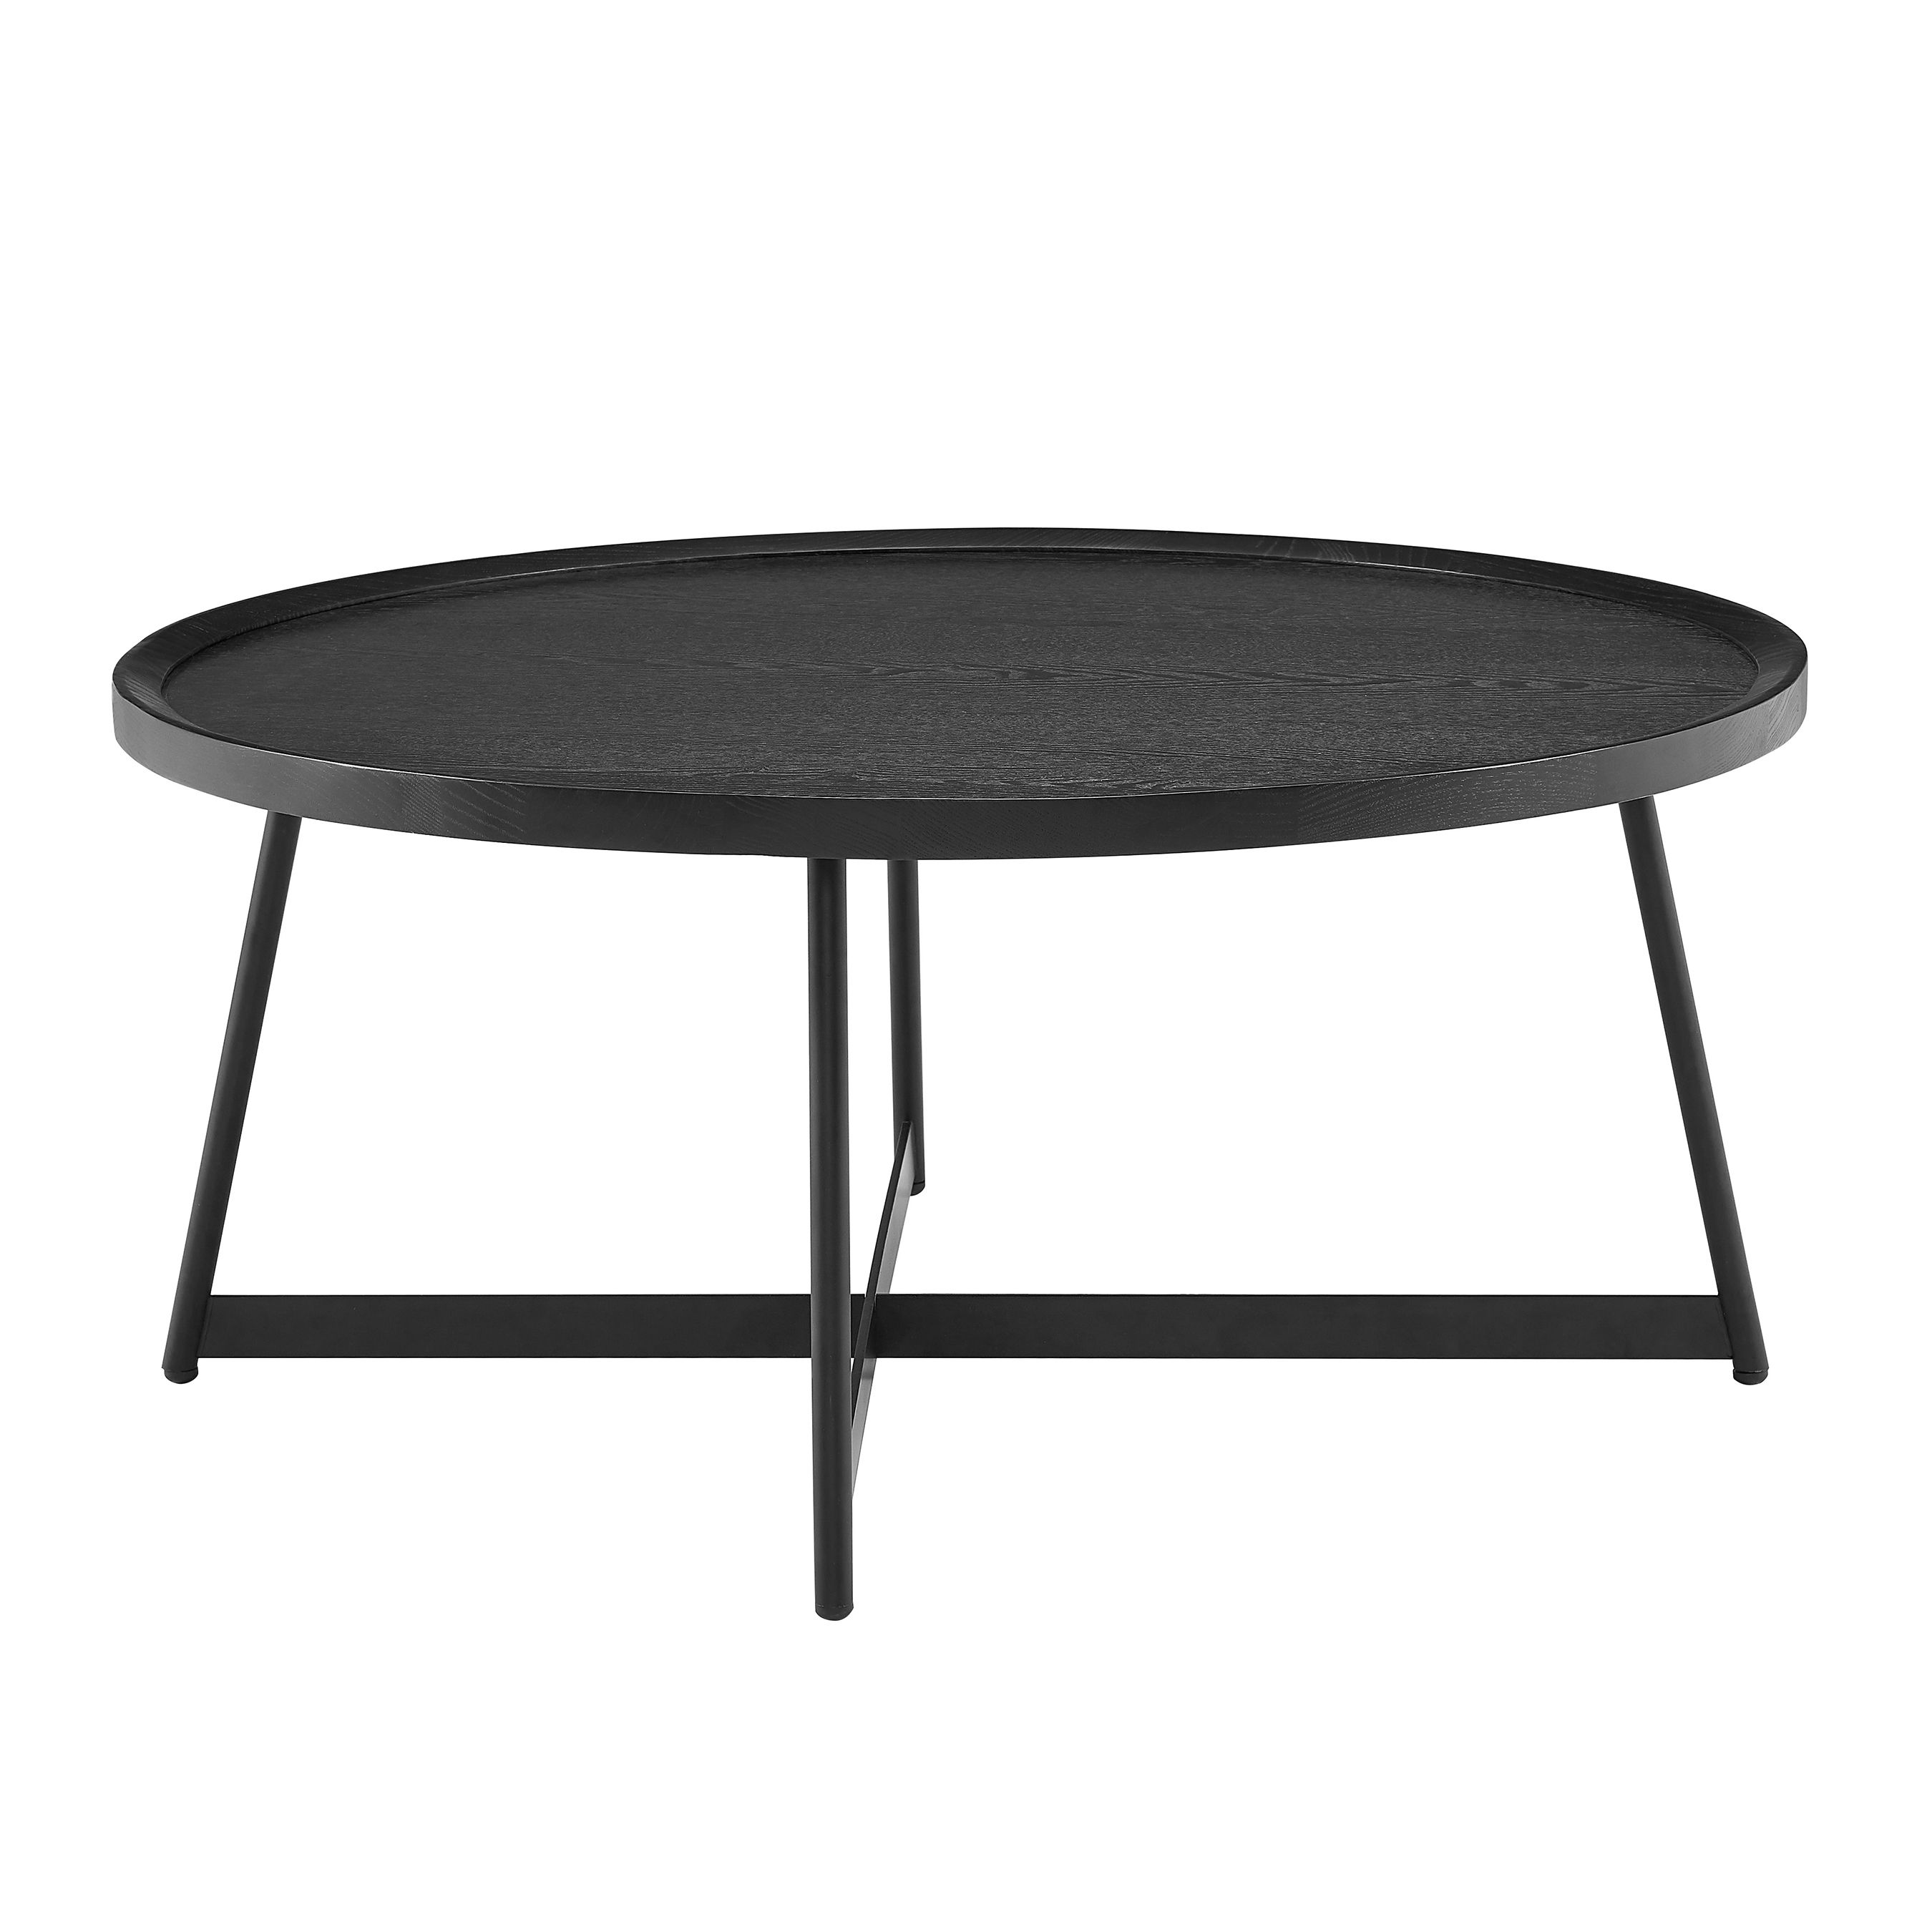 Niklaus Niklaus 35 Round Coffee Table In Black Ash Wood And Black Ashley Furniture Homestore Cheap Coffee Table Coffee Table Round Coffee Table [ 2700 x 2700 Pixel ]